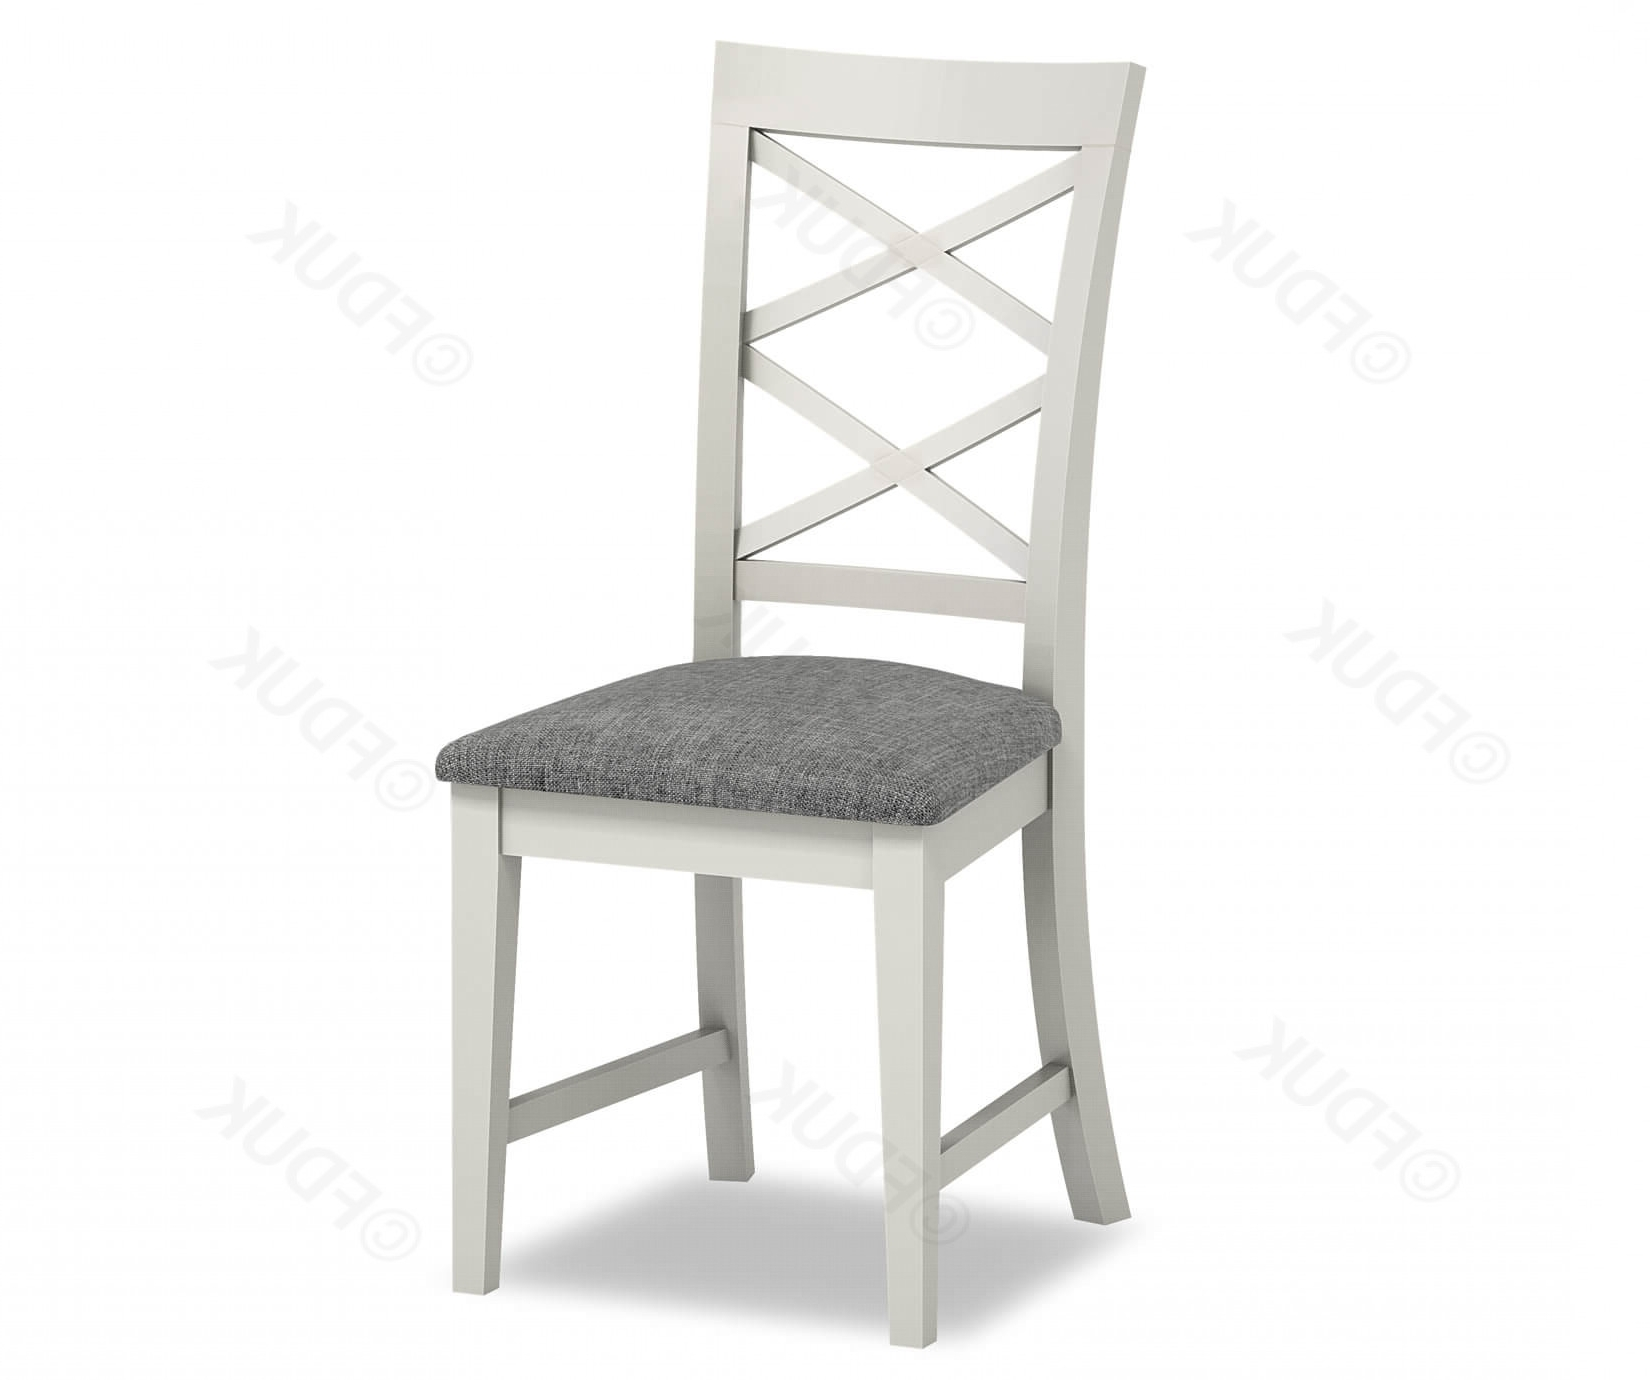 Chester Cross Back Dining Chair Regarding Chester Dining Chairs (Gallery 2 of 25)